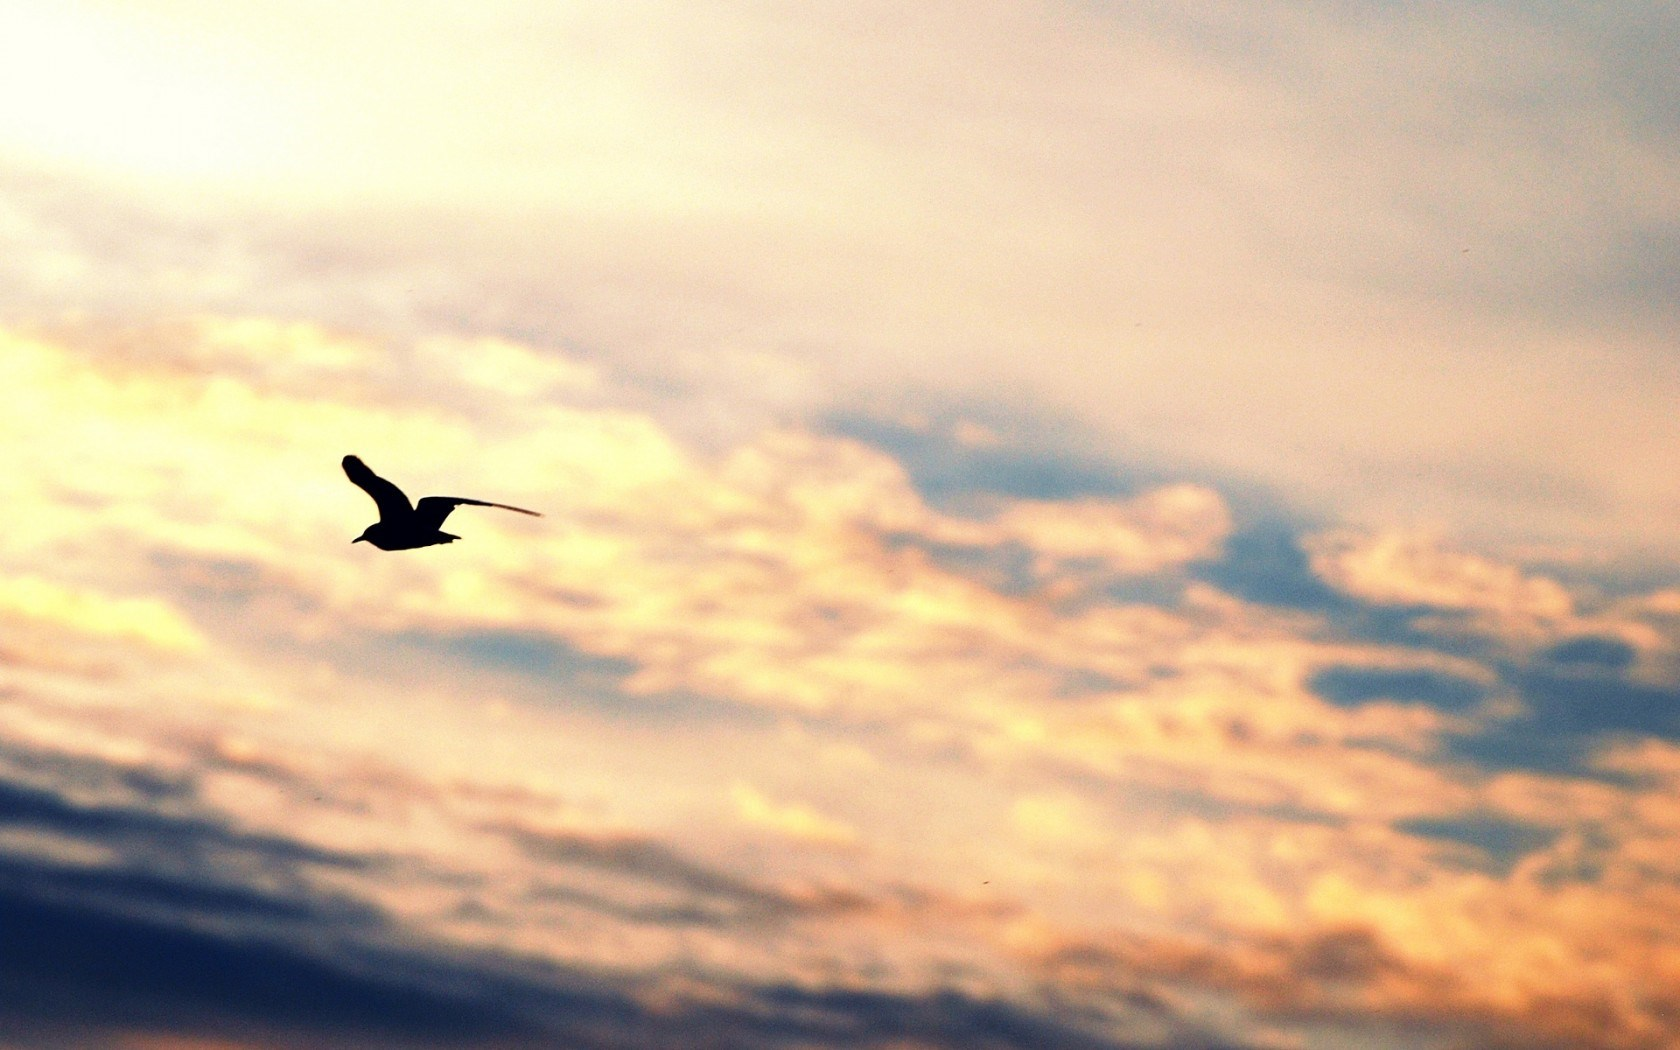 bird flying silhouette gull freedom sky hd wallpaper   Magic4Wallscom 1680x1050